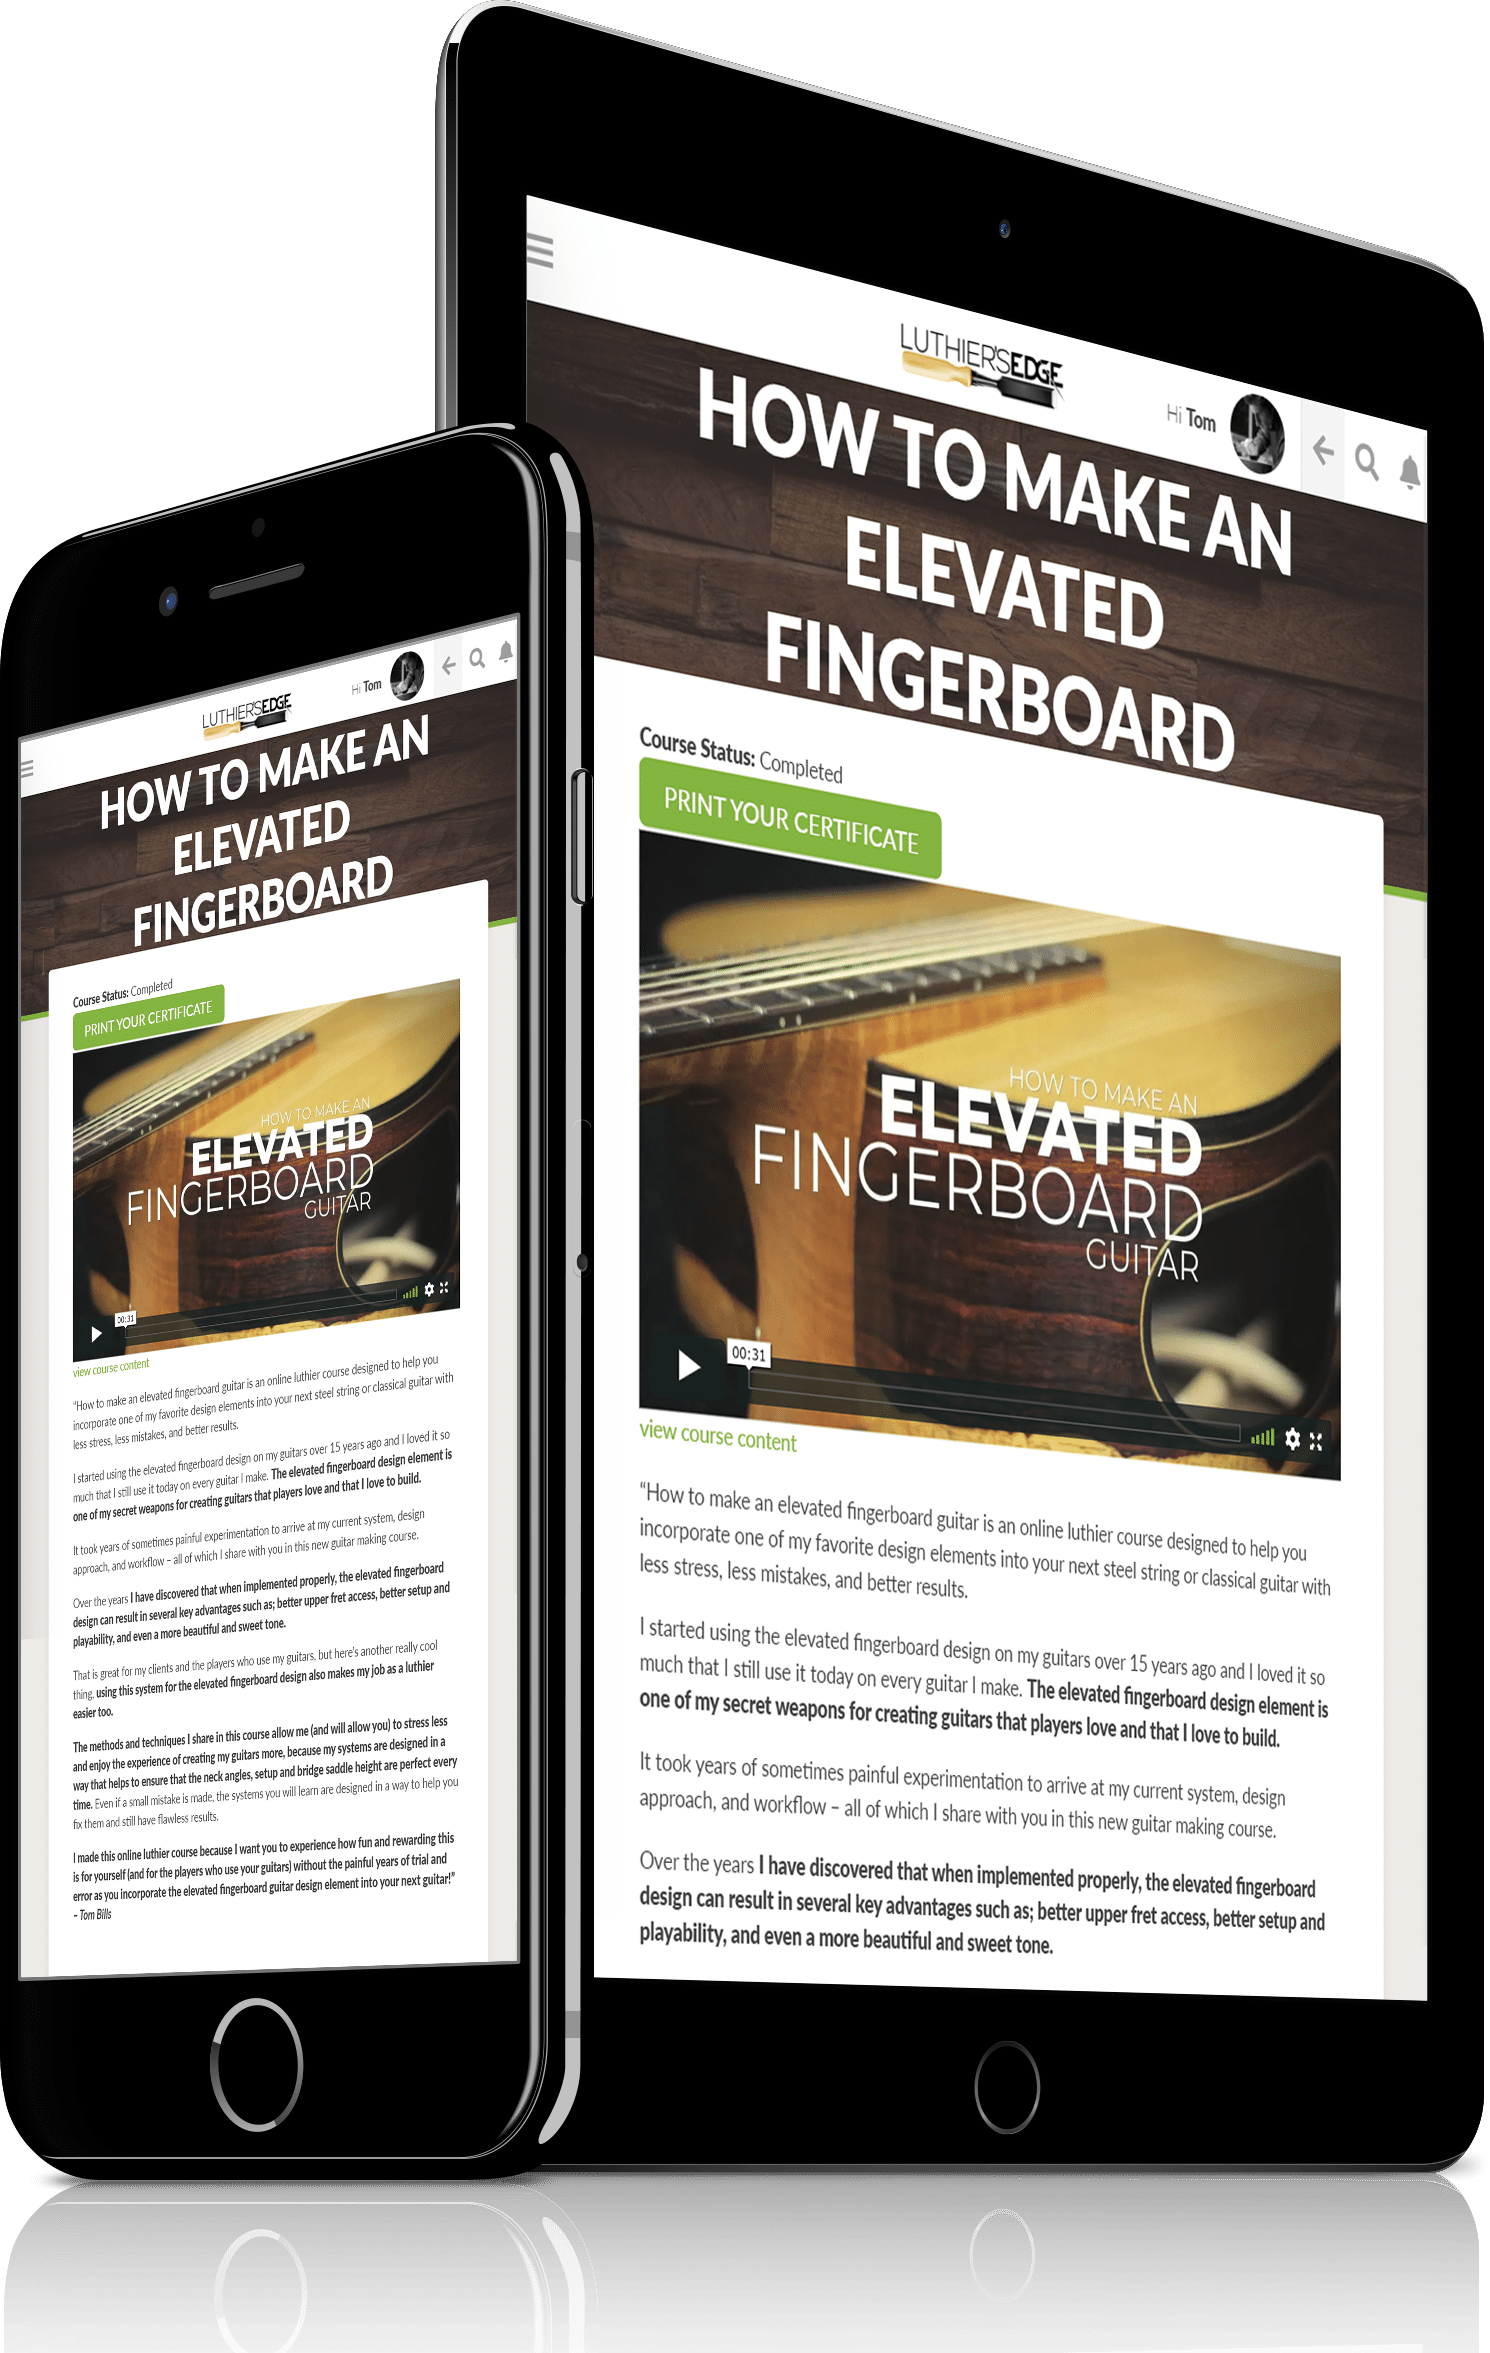 elevated fingerboard guitar making course examples